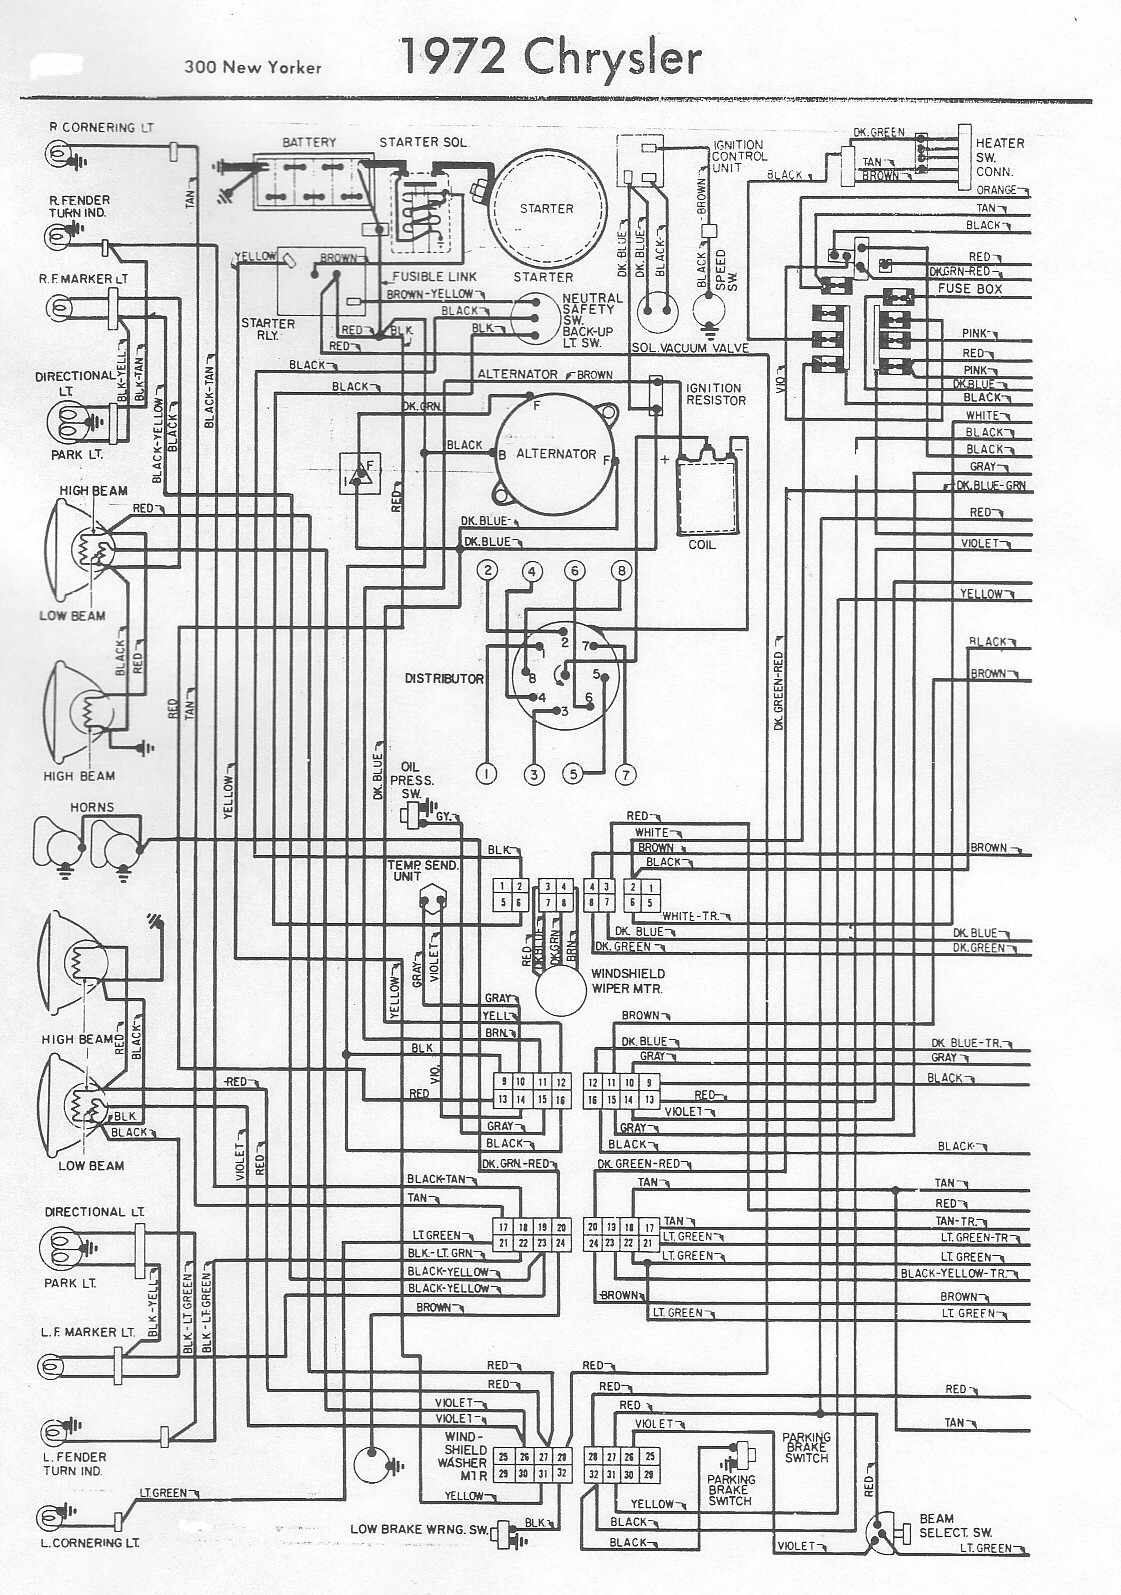 1949 plymouth overdrive wiring diagram plymouth auto